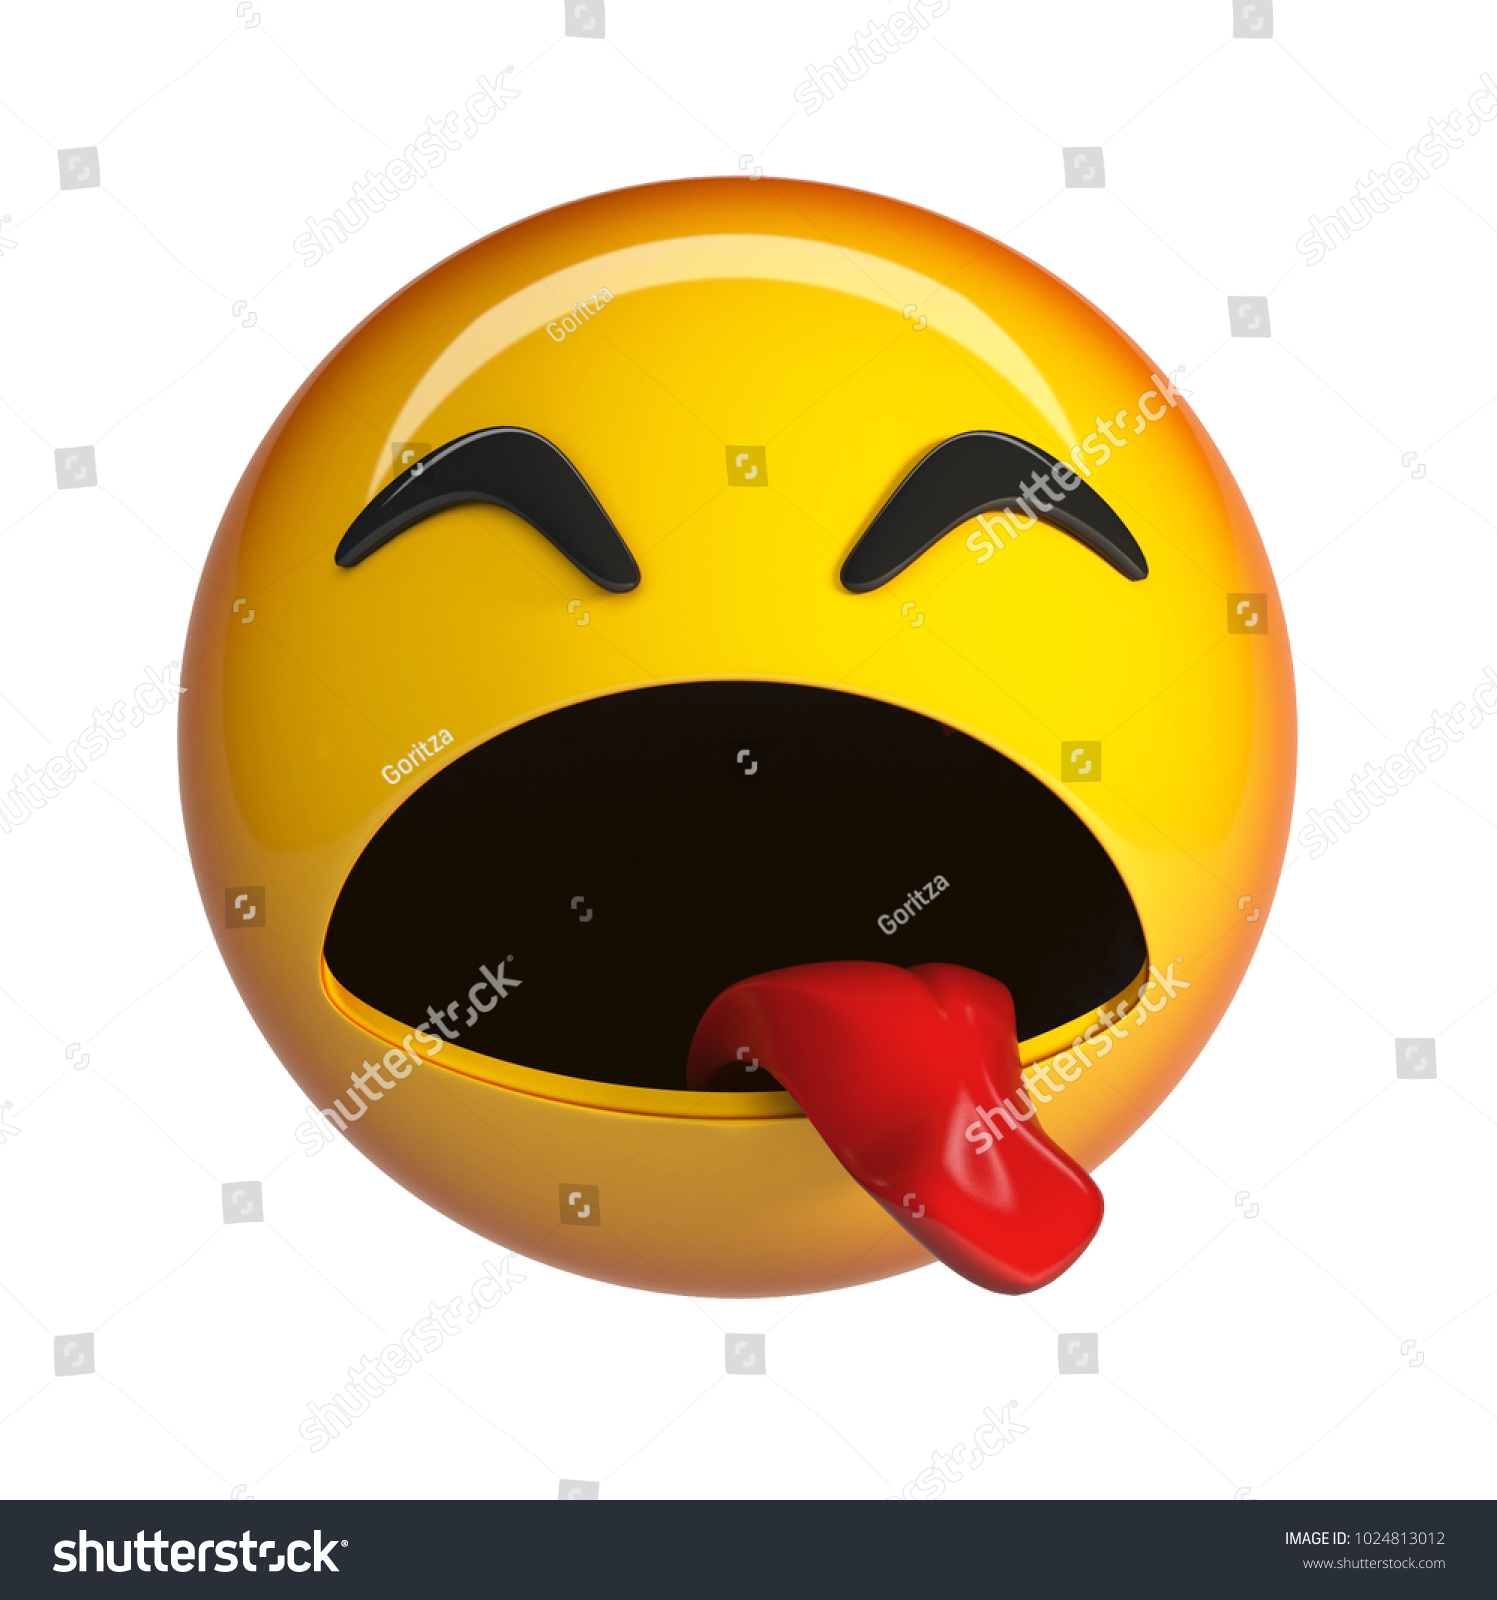 Sick emoji disgust face emoticon 3d rendering isolated on white background